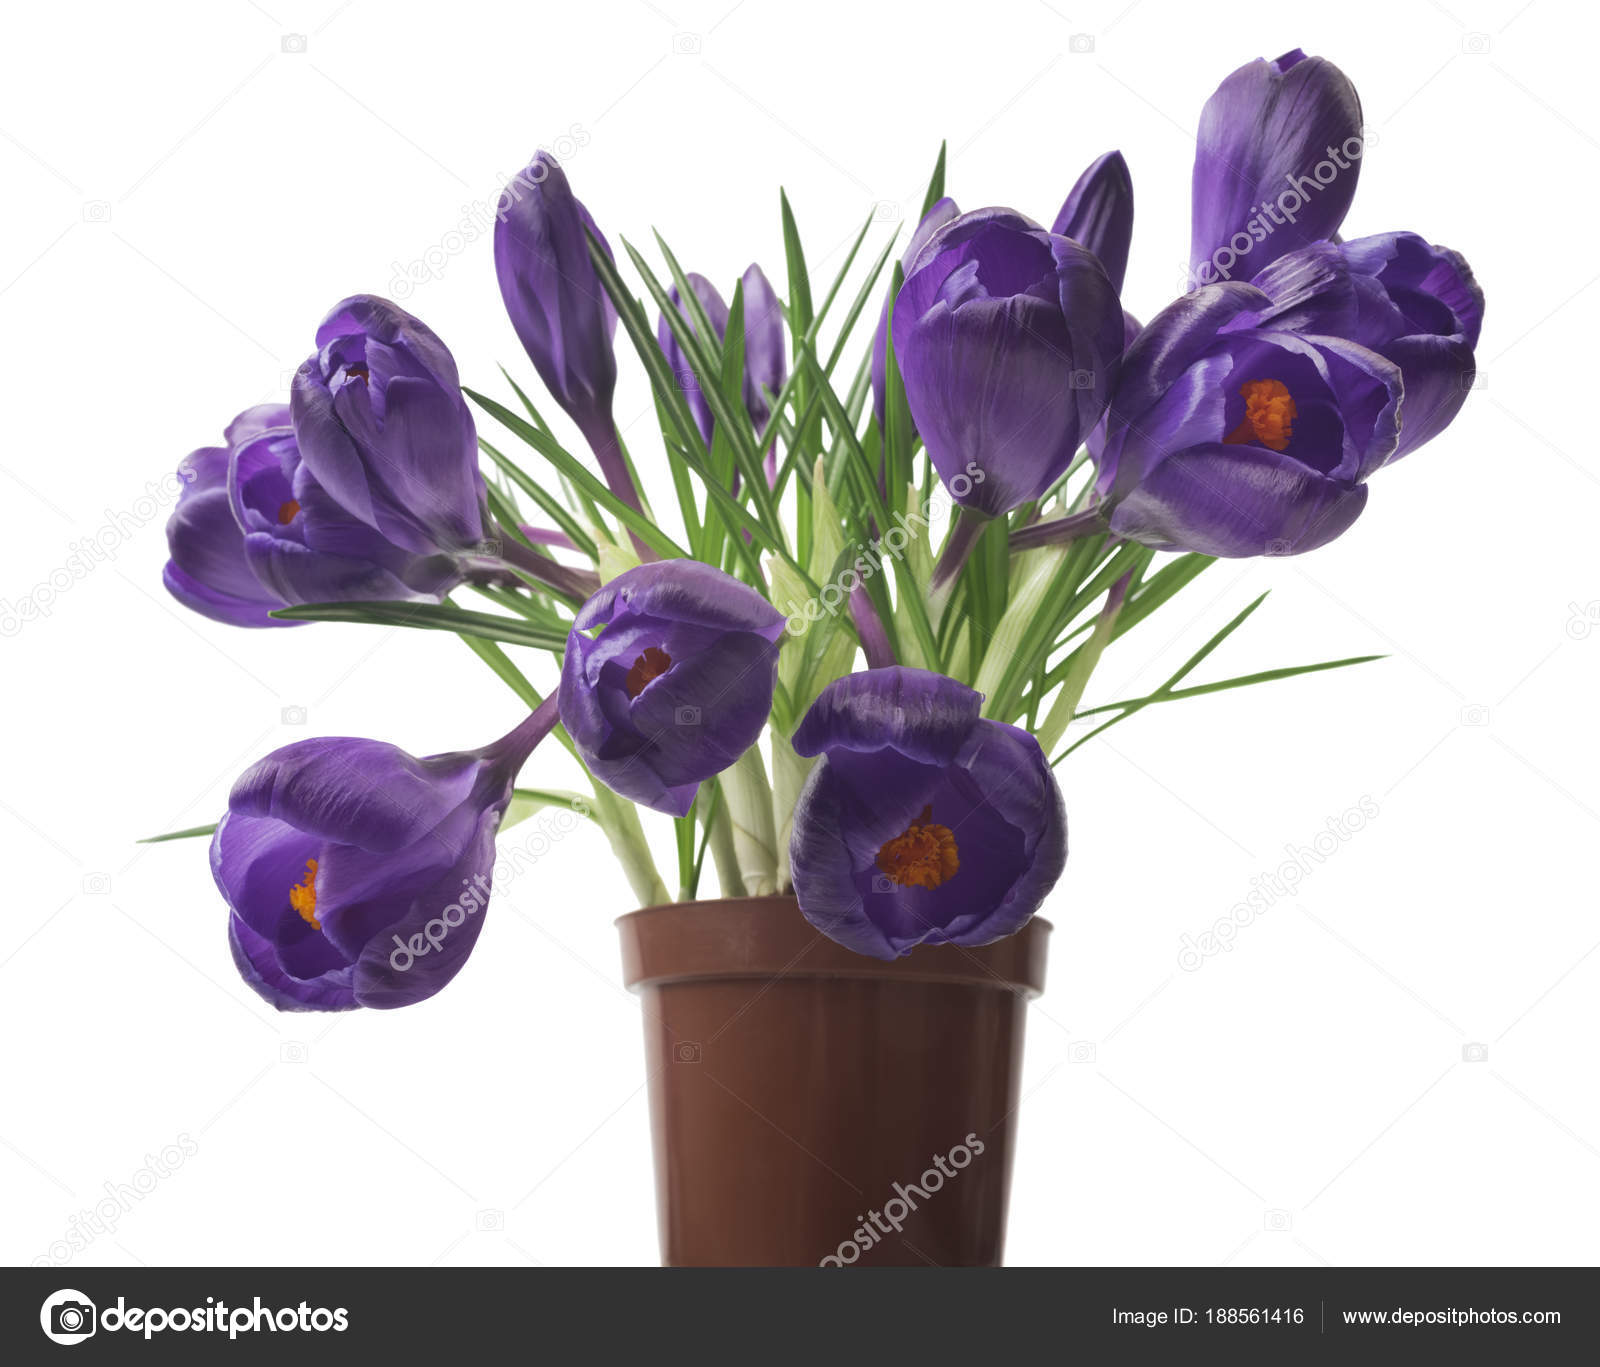 Beautiful crocus white background fresh spring flowers violet crocus beautiful crocus on white background fresh spring flowers violet crocus flowers bouquet selective focus photo by ulkan mightylinksfo